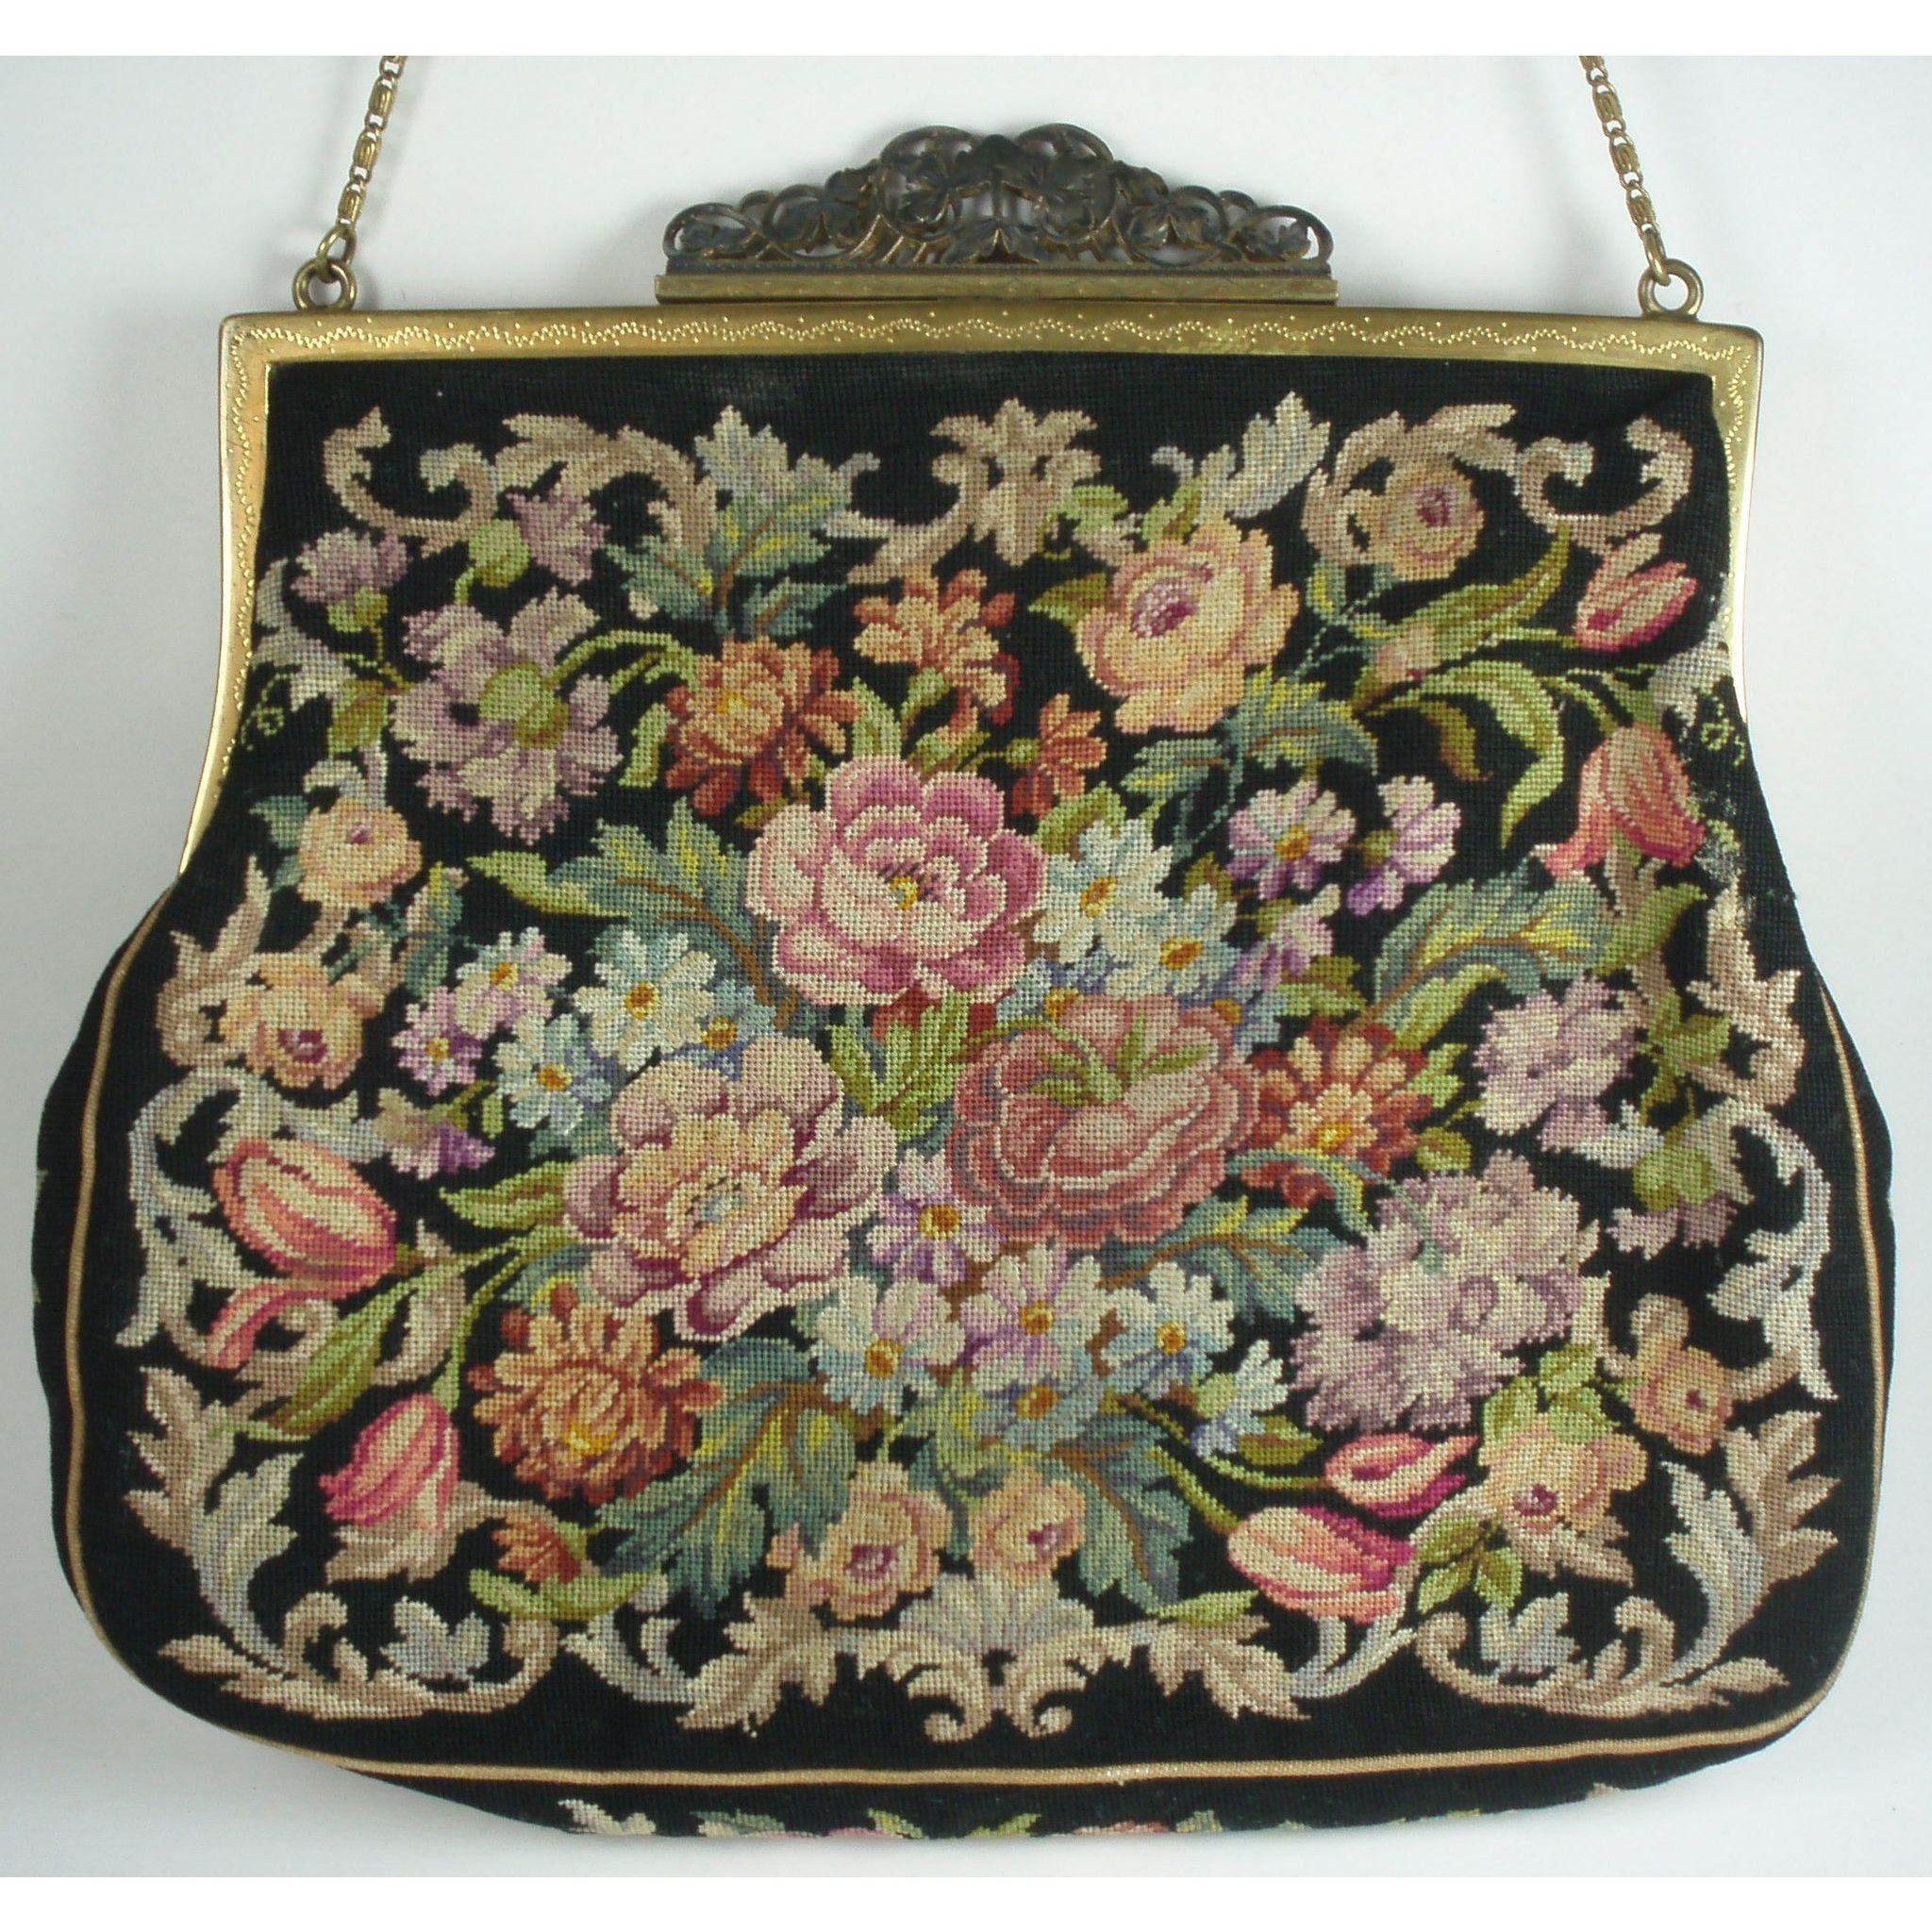 Vintage 1940s Micro Petit Point Purse Made In Austria Purses Vintage Handbags Vintage Purses